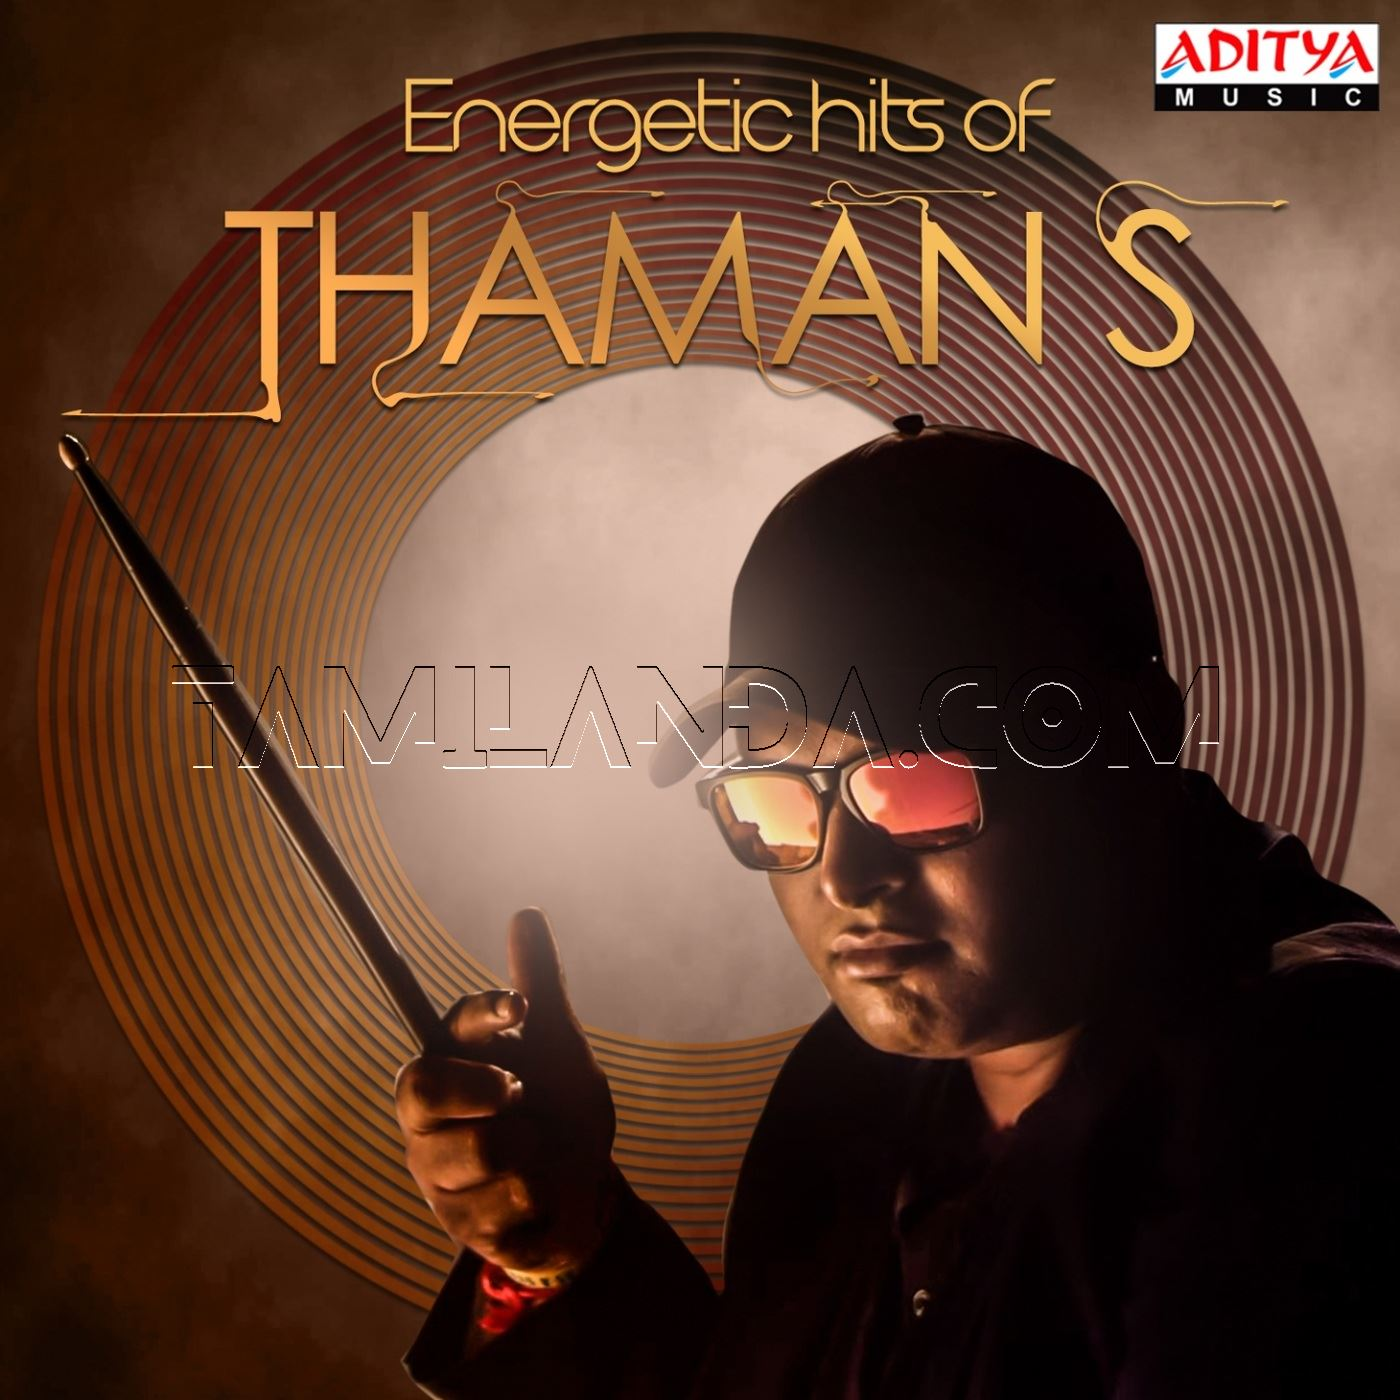 Energetic Hits of S. Thaman FLAC Songs [2018]